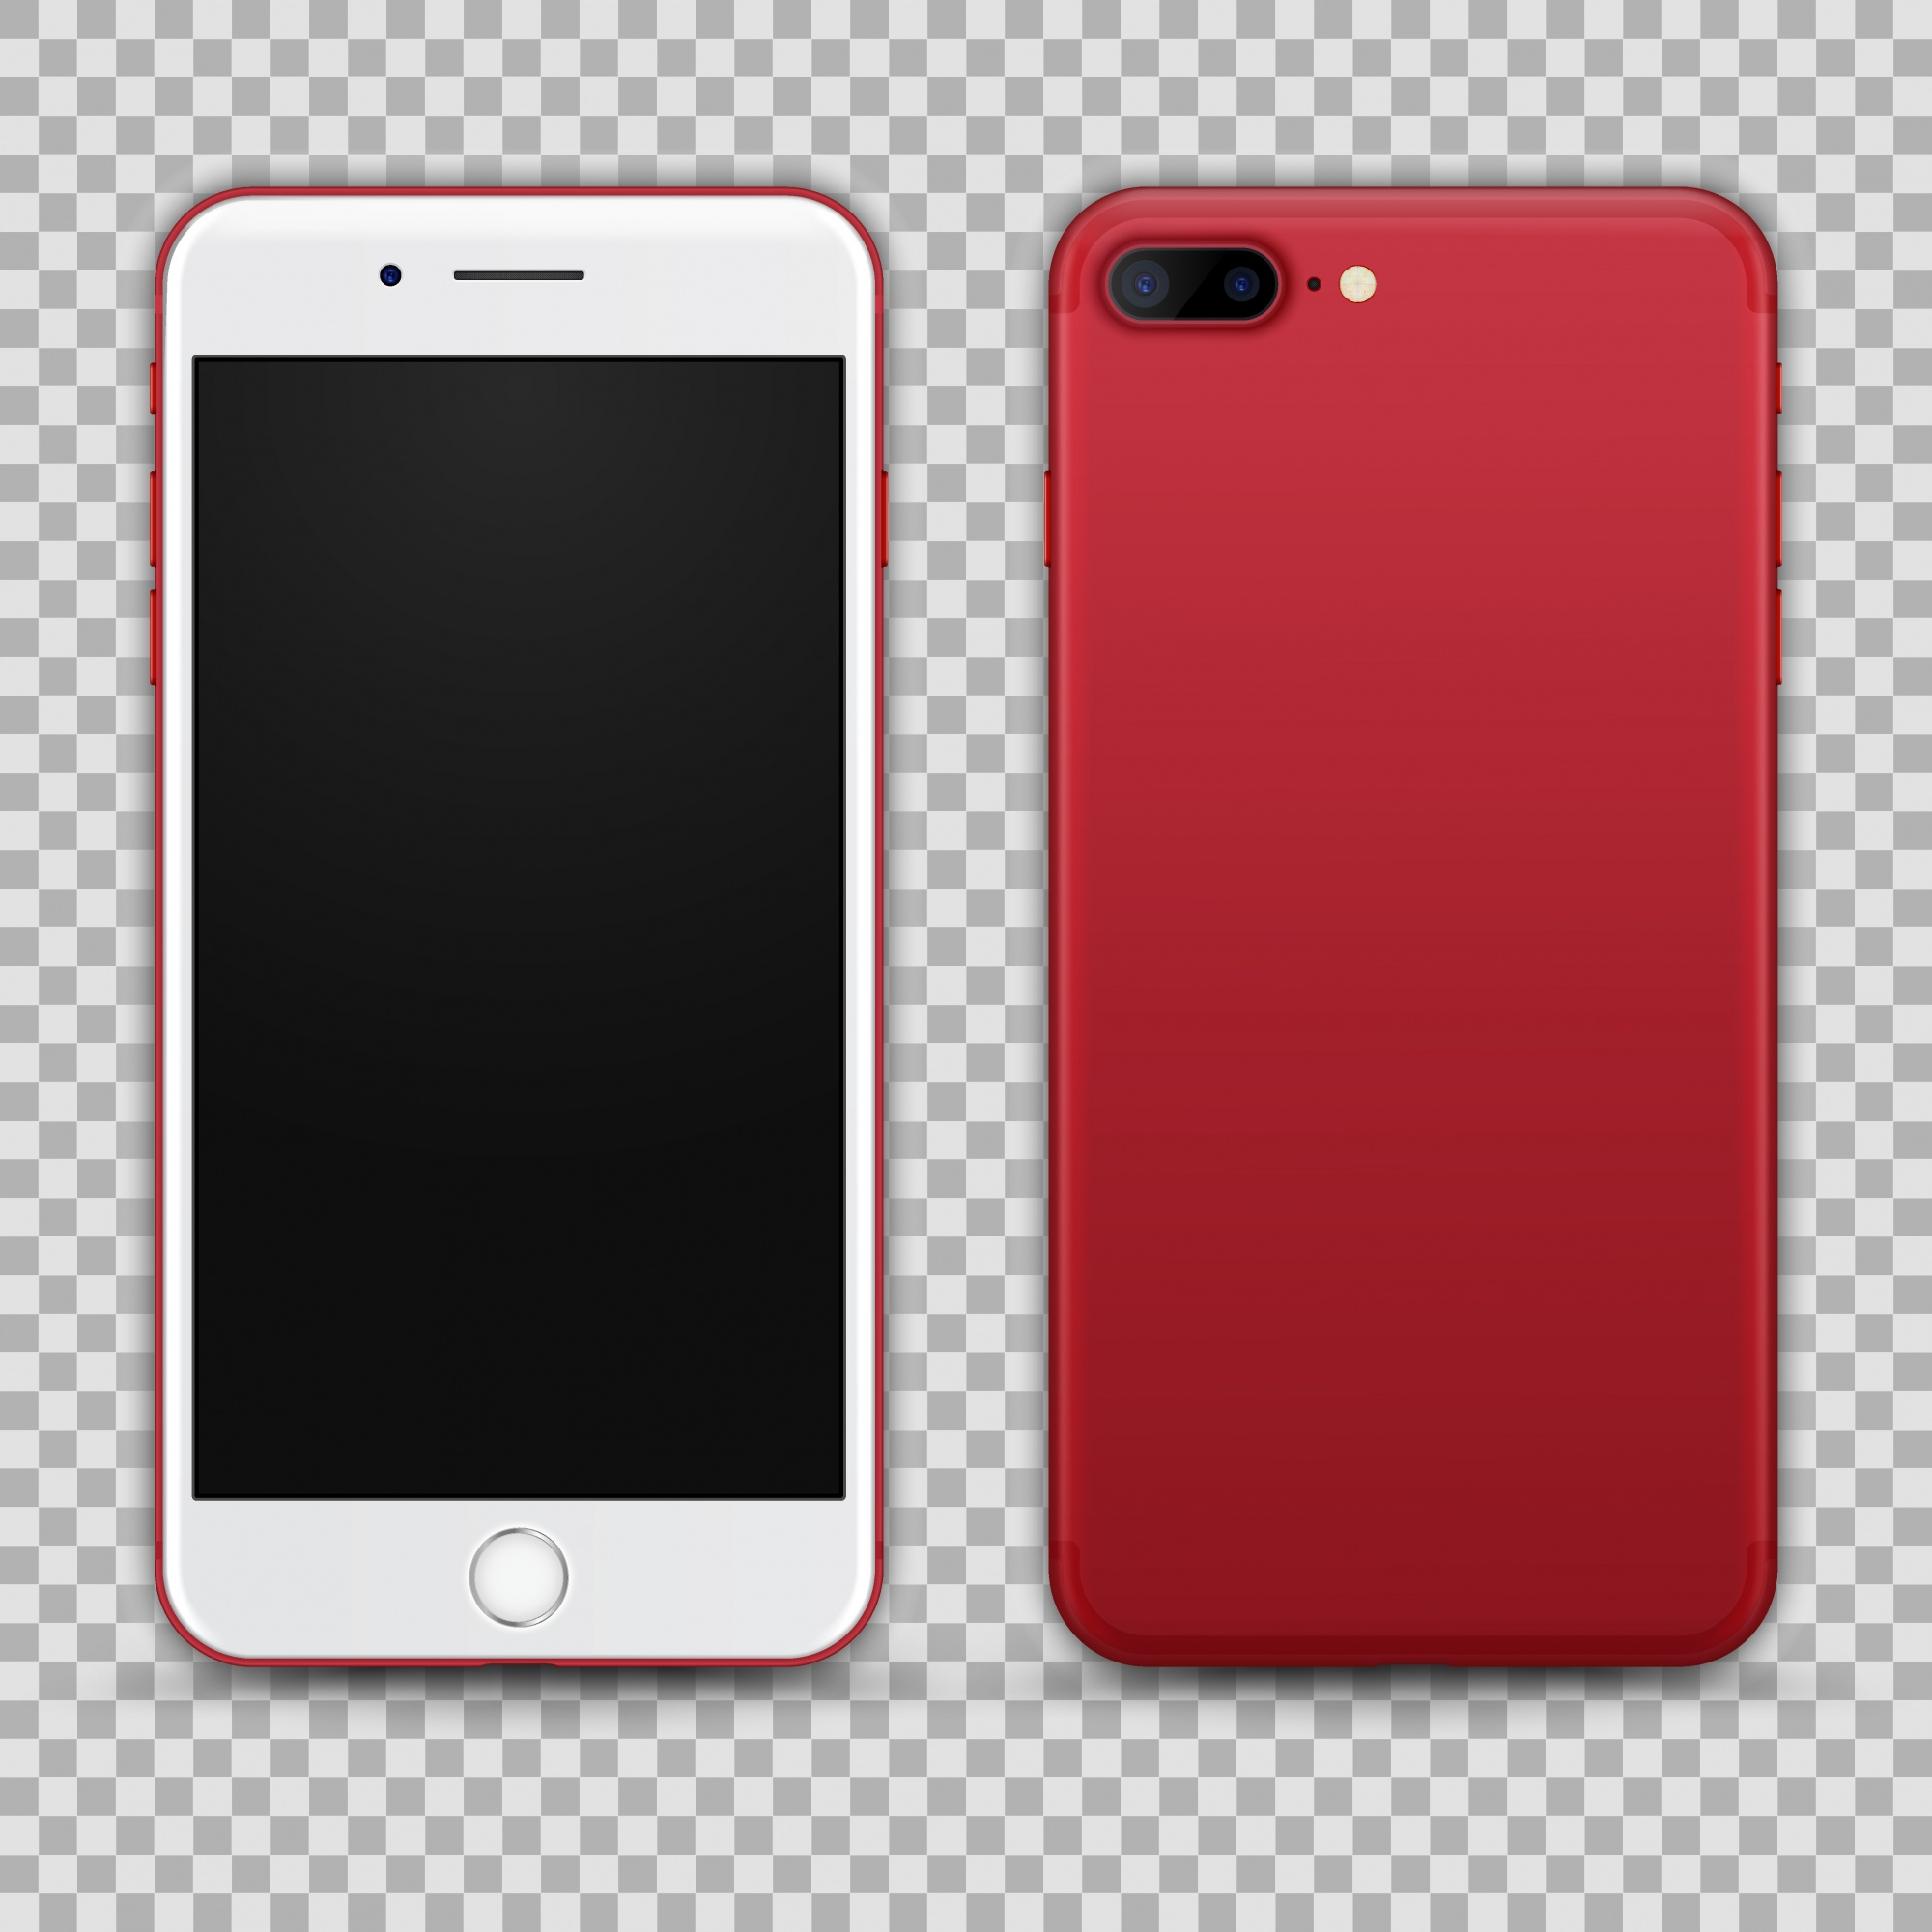 Realistic Red Smartphone isolated on Transparent Background. Front and Back View